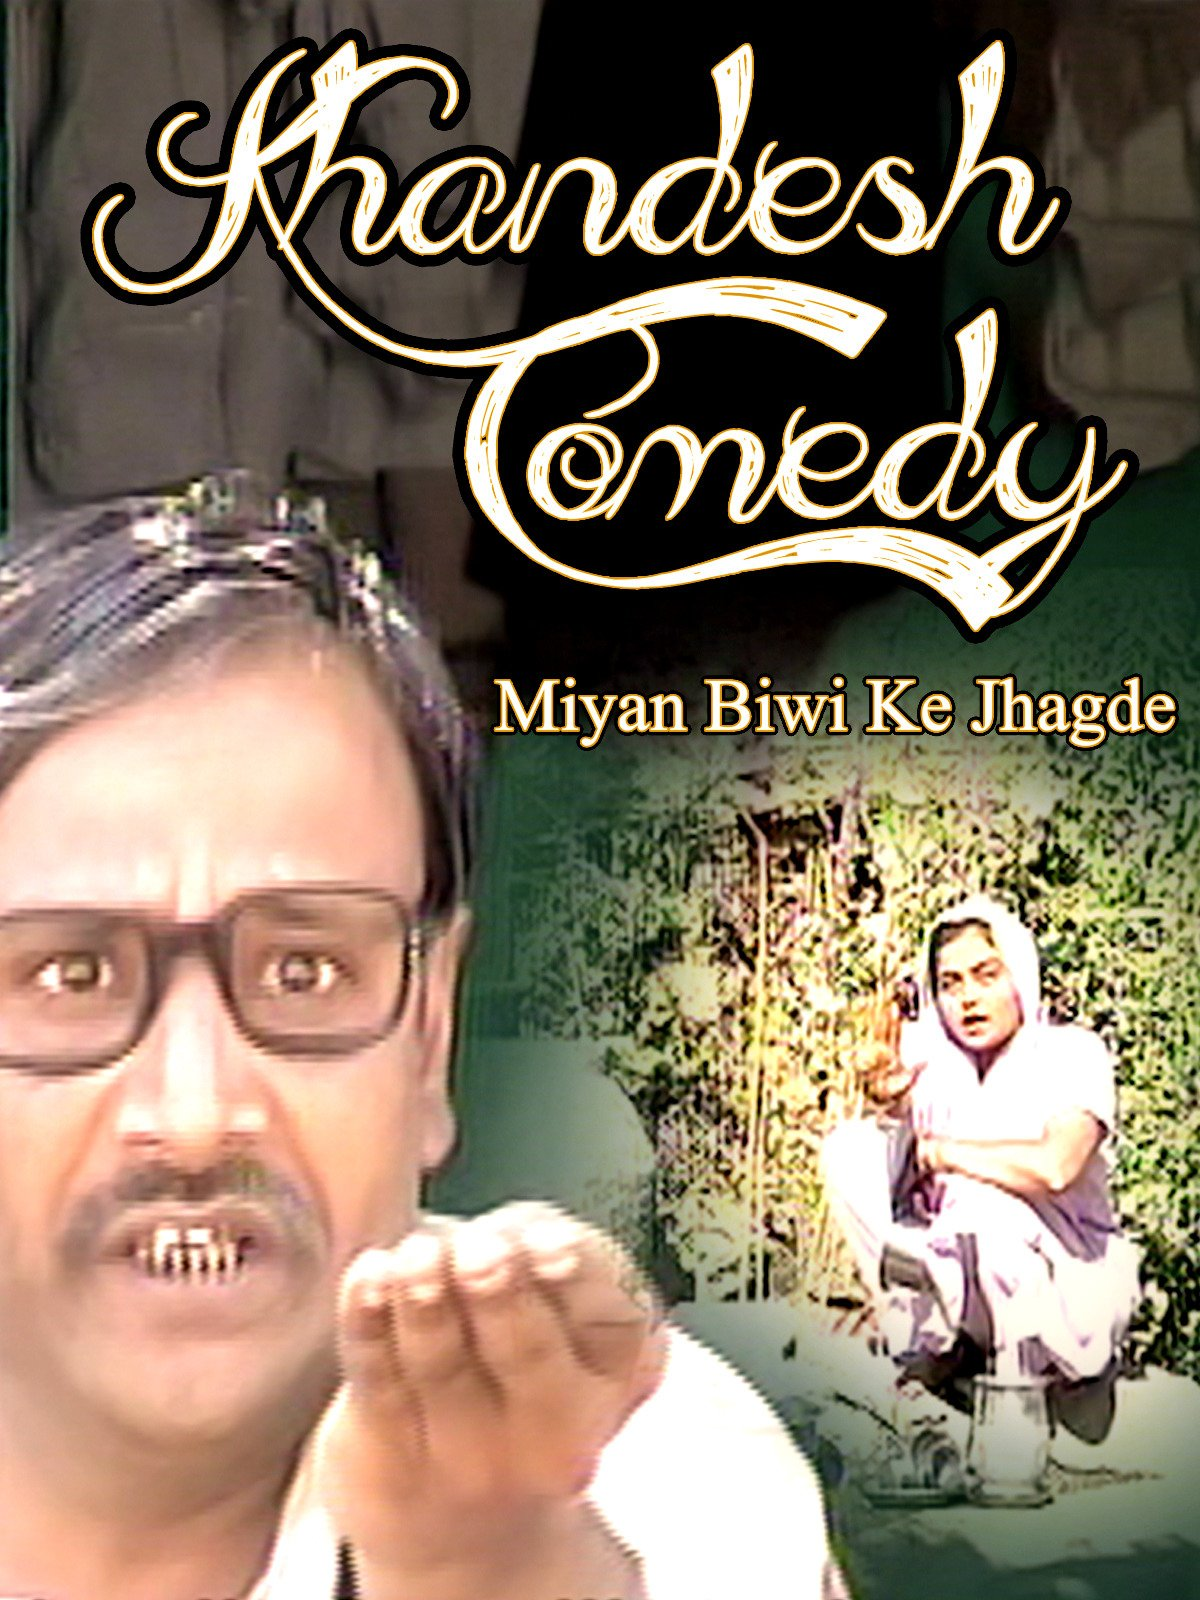 Clip: Khandesh Comedy